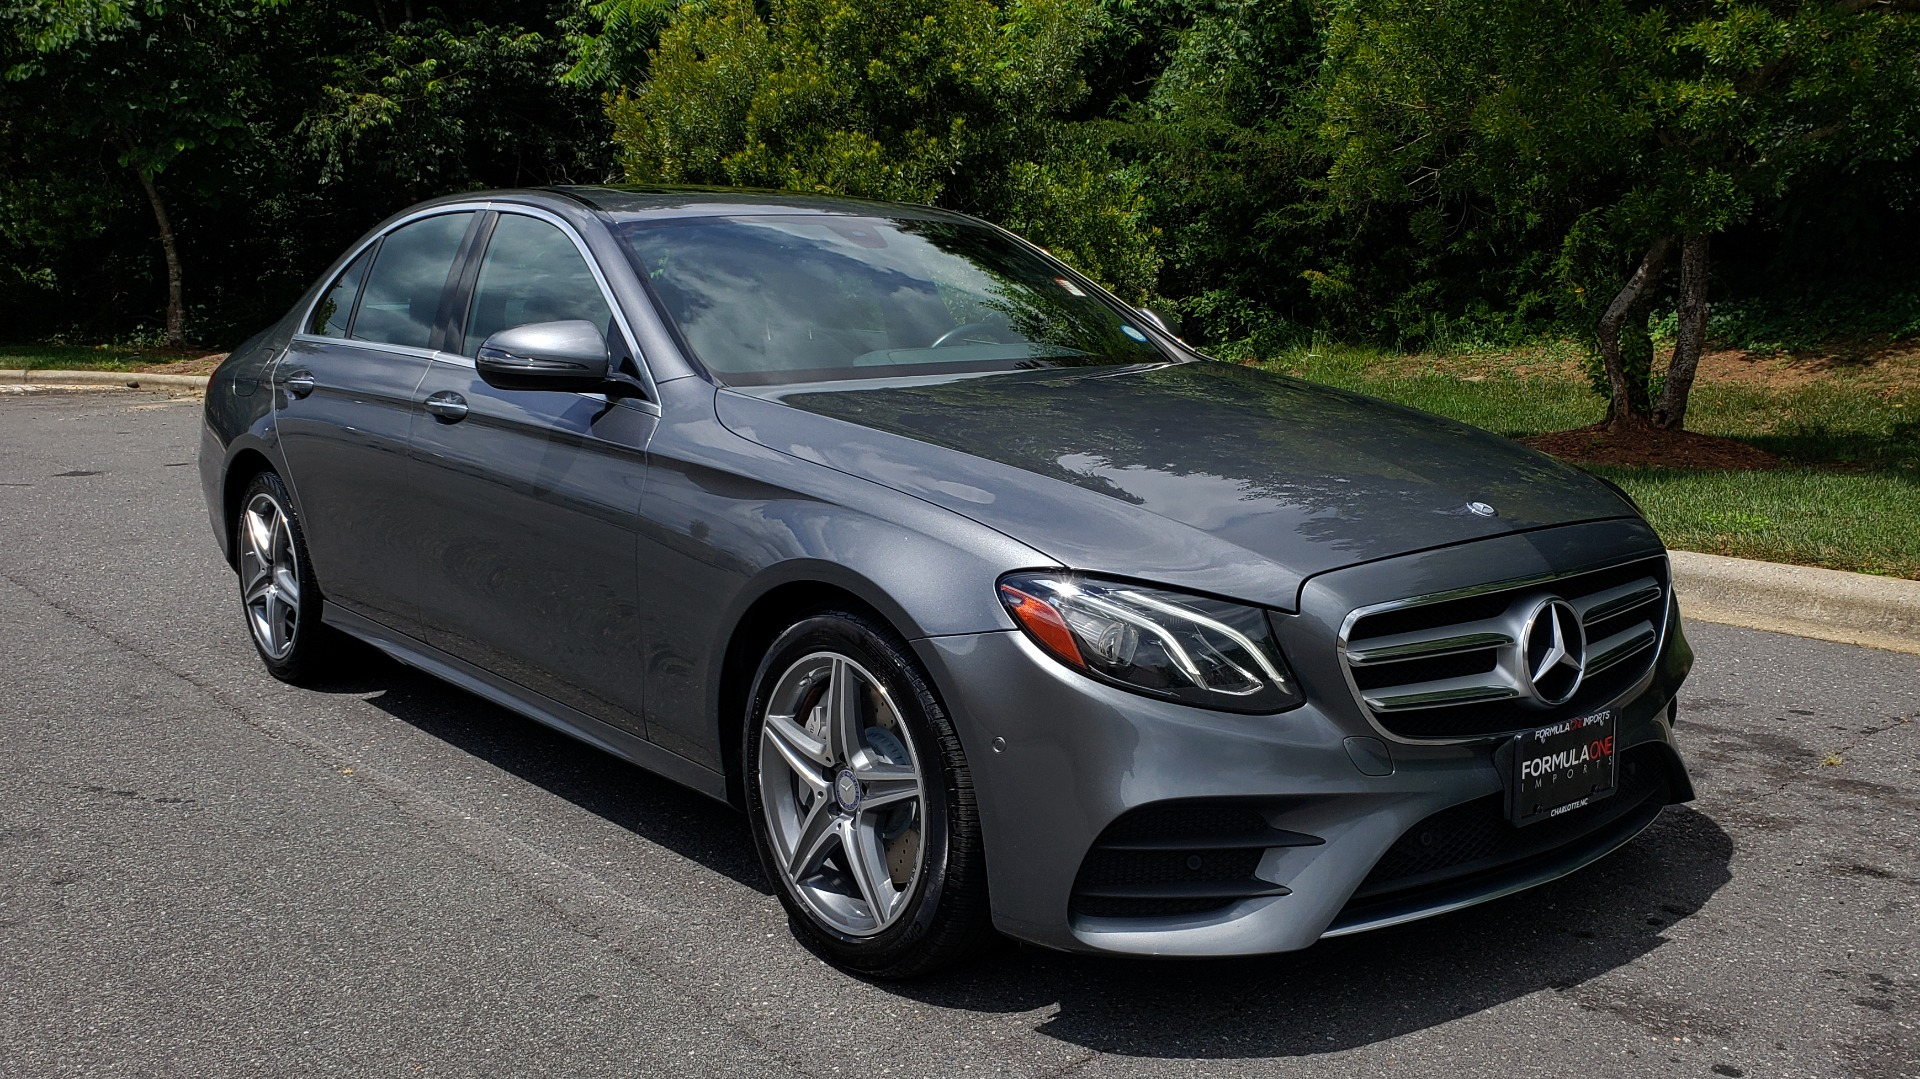 Used 2017 Mercedes-Benz E-CLASS E 300 SPORT 4MATIC / PREM PKG / NAV / SUNROOF / BURMESTER SND / REARVIEW for sale Sold at Formula Imports in Charlotte NC 28227 4